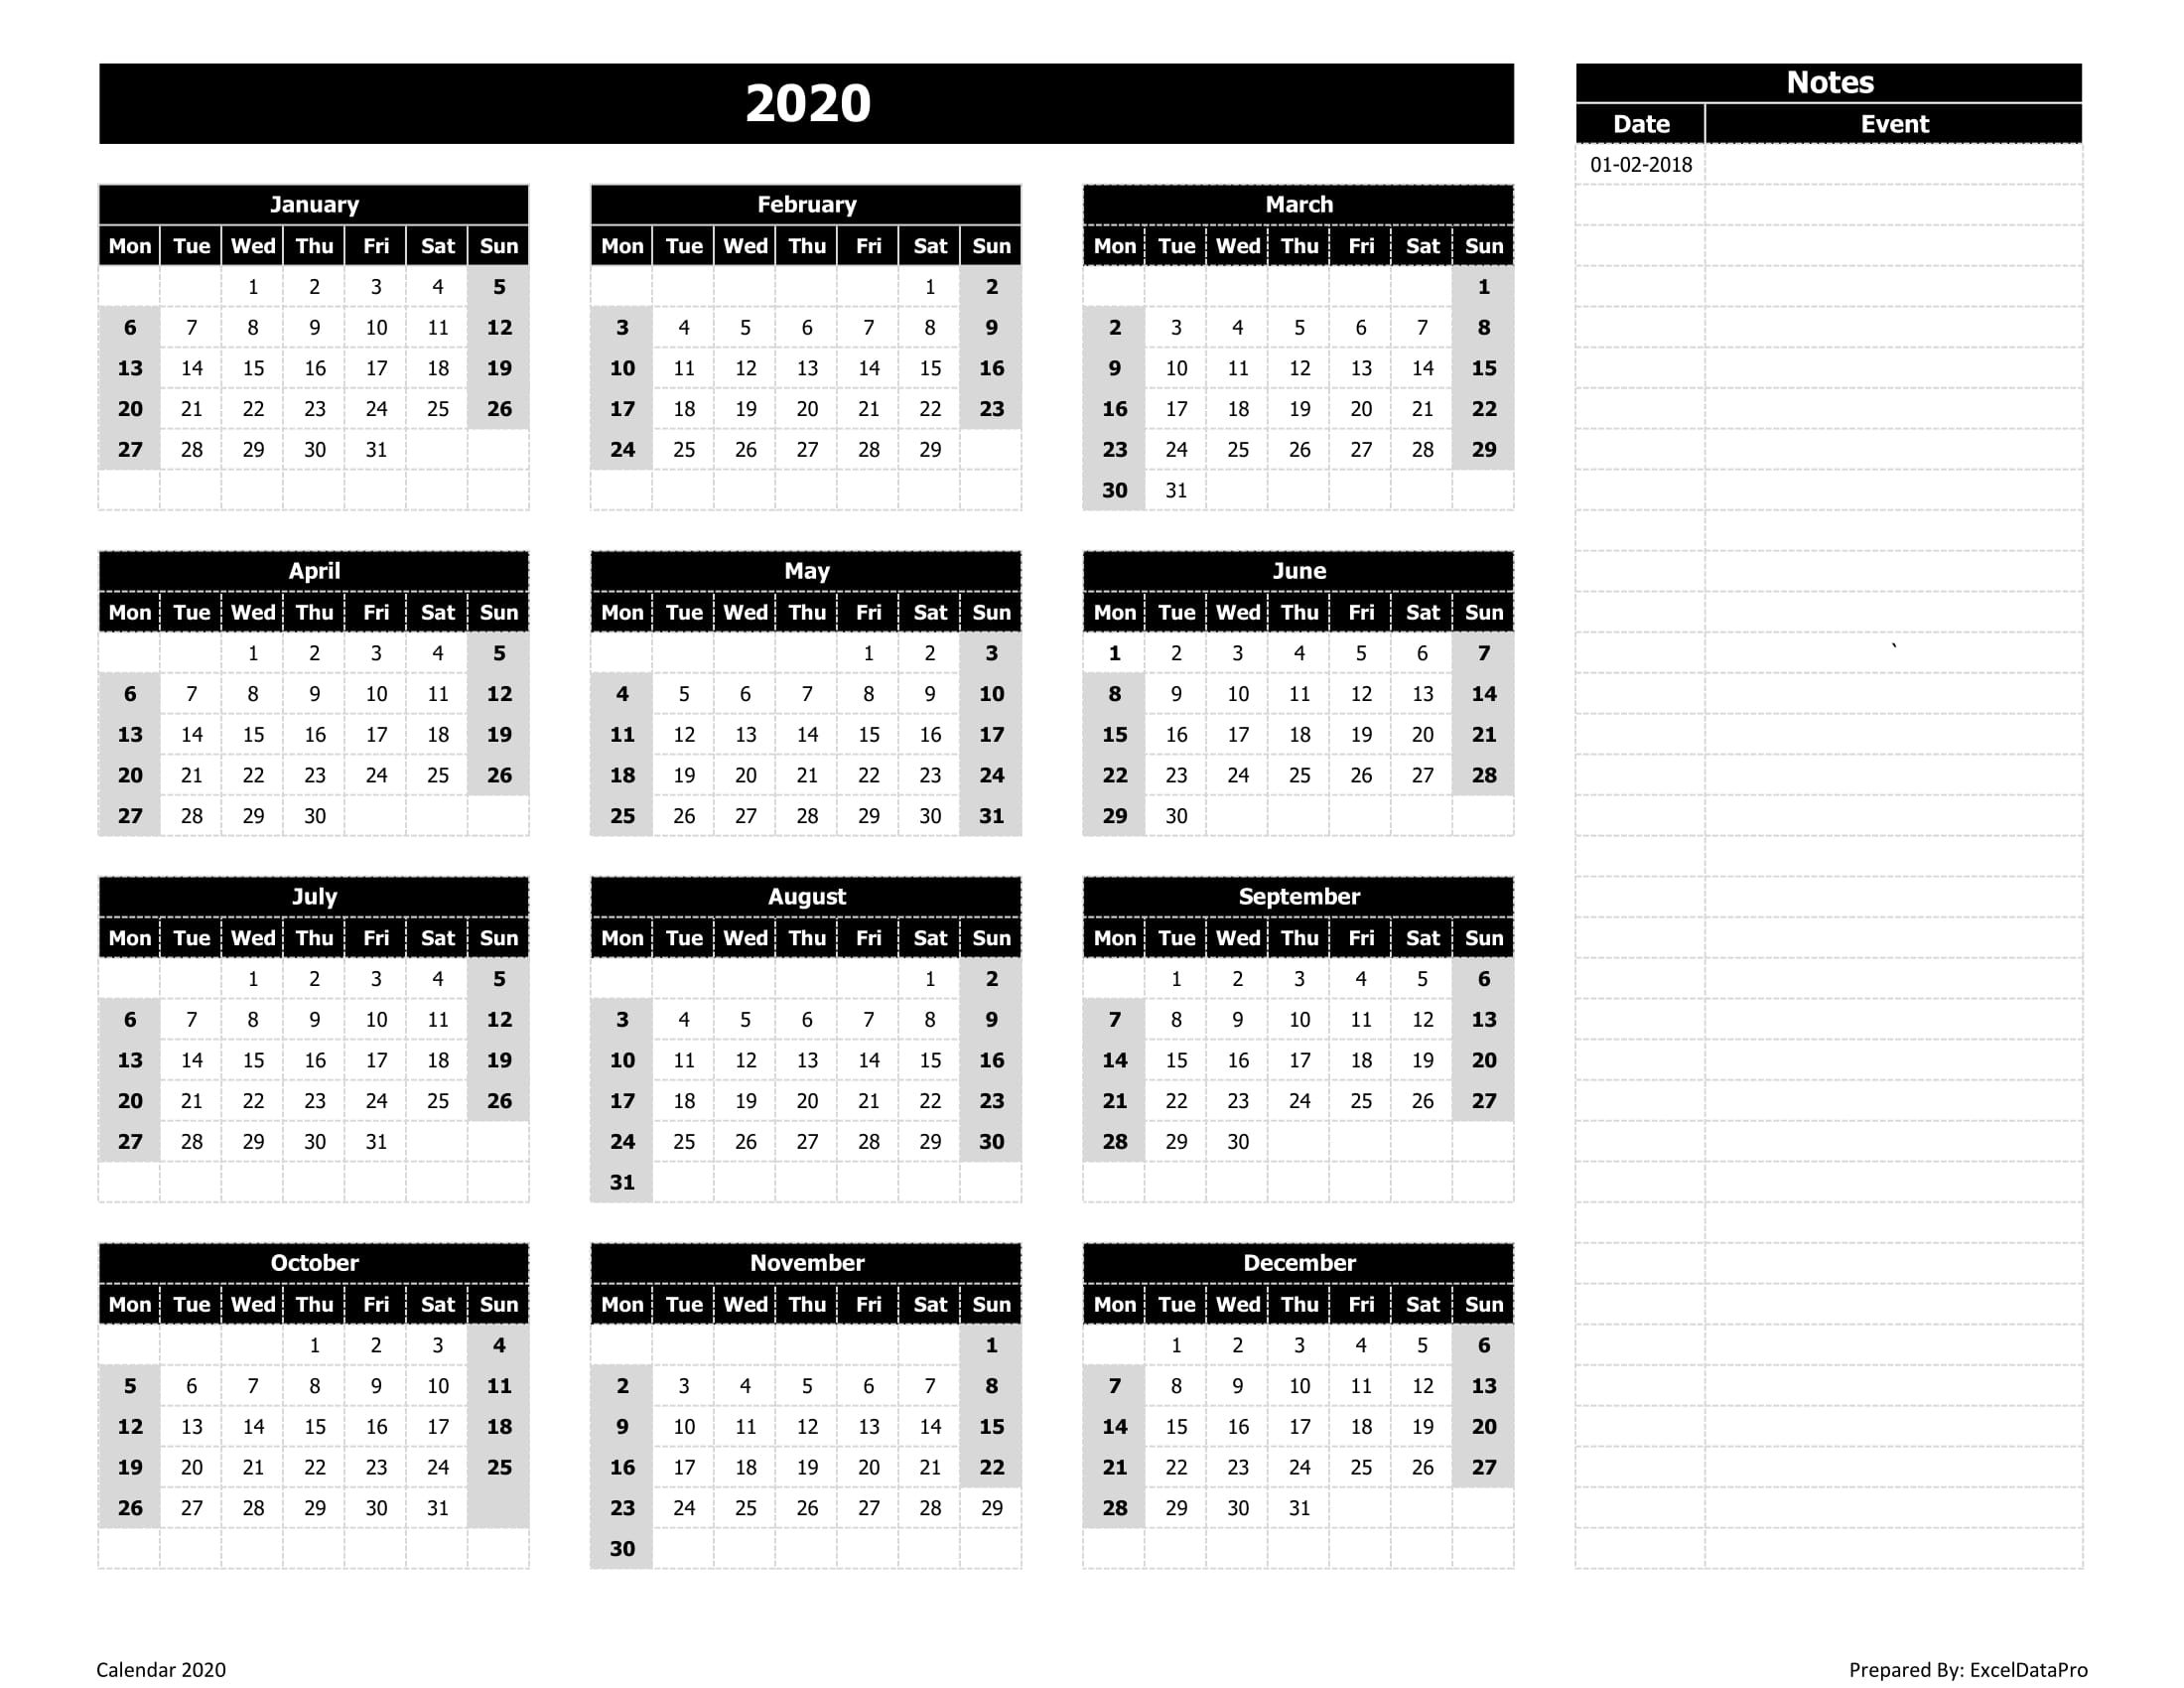 2020 Calendar With Notes